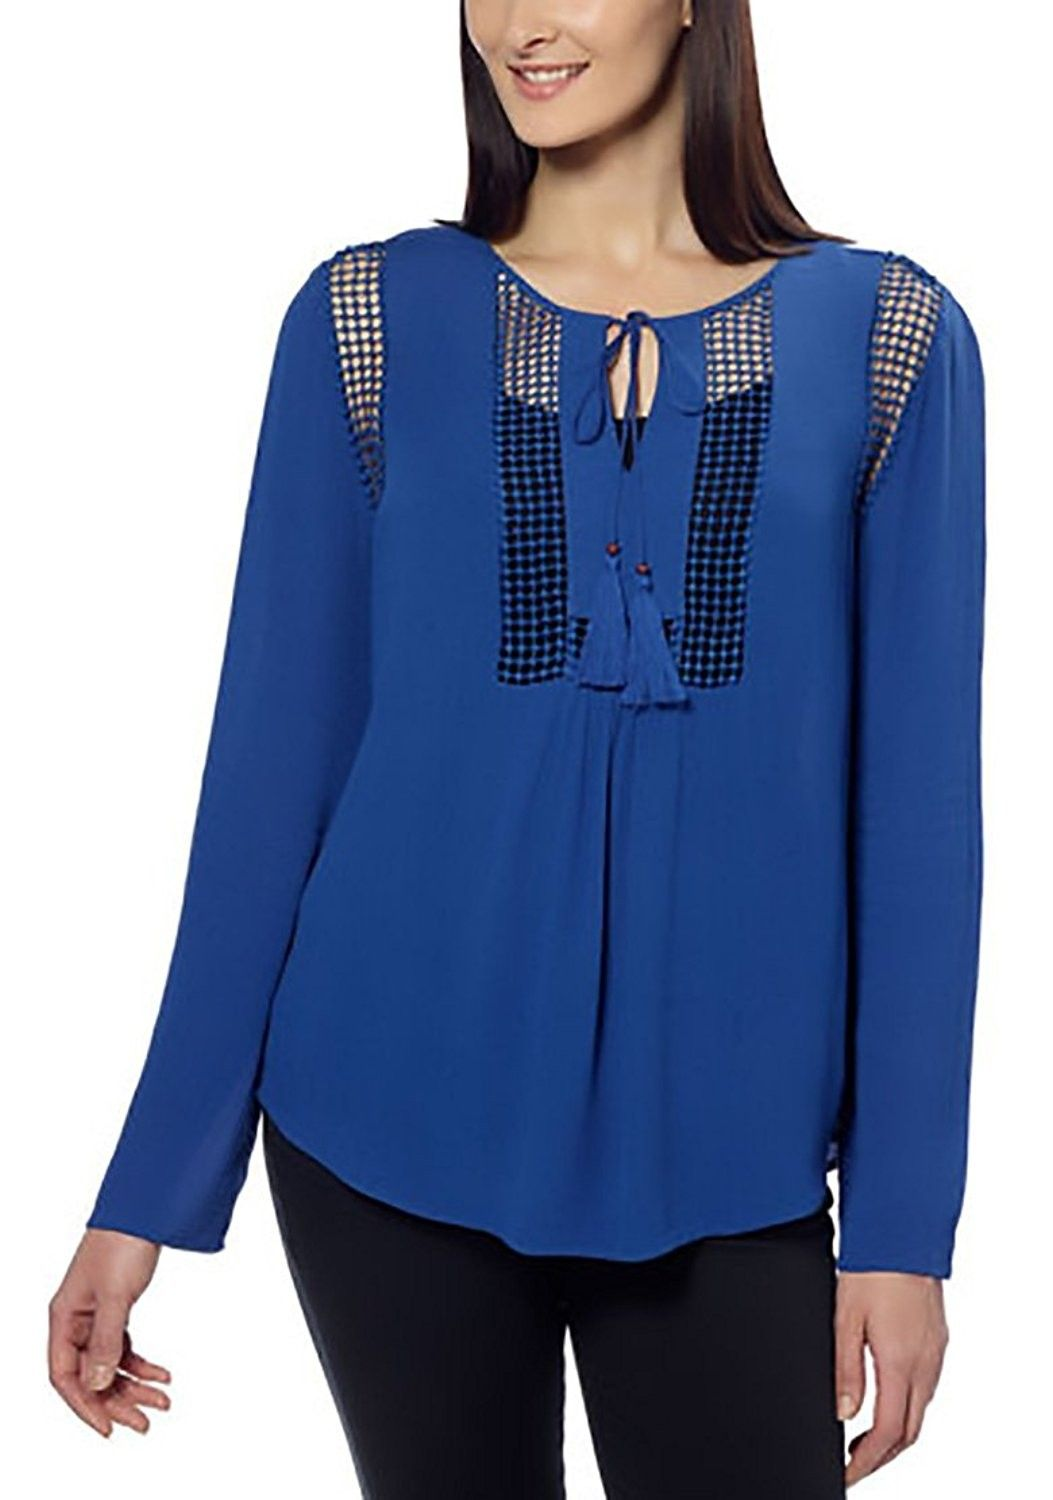 1cb805bb Womens Crinkle Blouse- Deep Sapphire Blue- Medium - CQ12H1WK2A3,Women's  Clothing, Tops & Tees, Blouses & Button-Down Shirts #women #fashion  #clothing ...